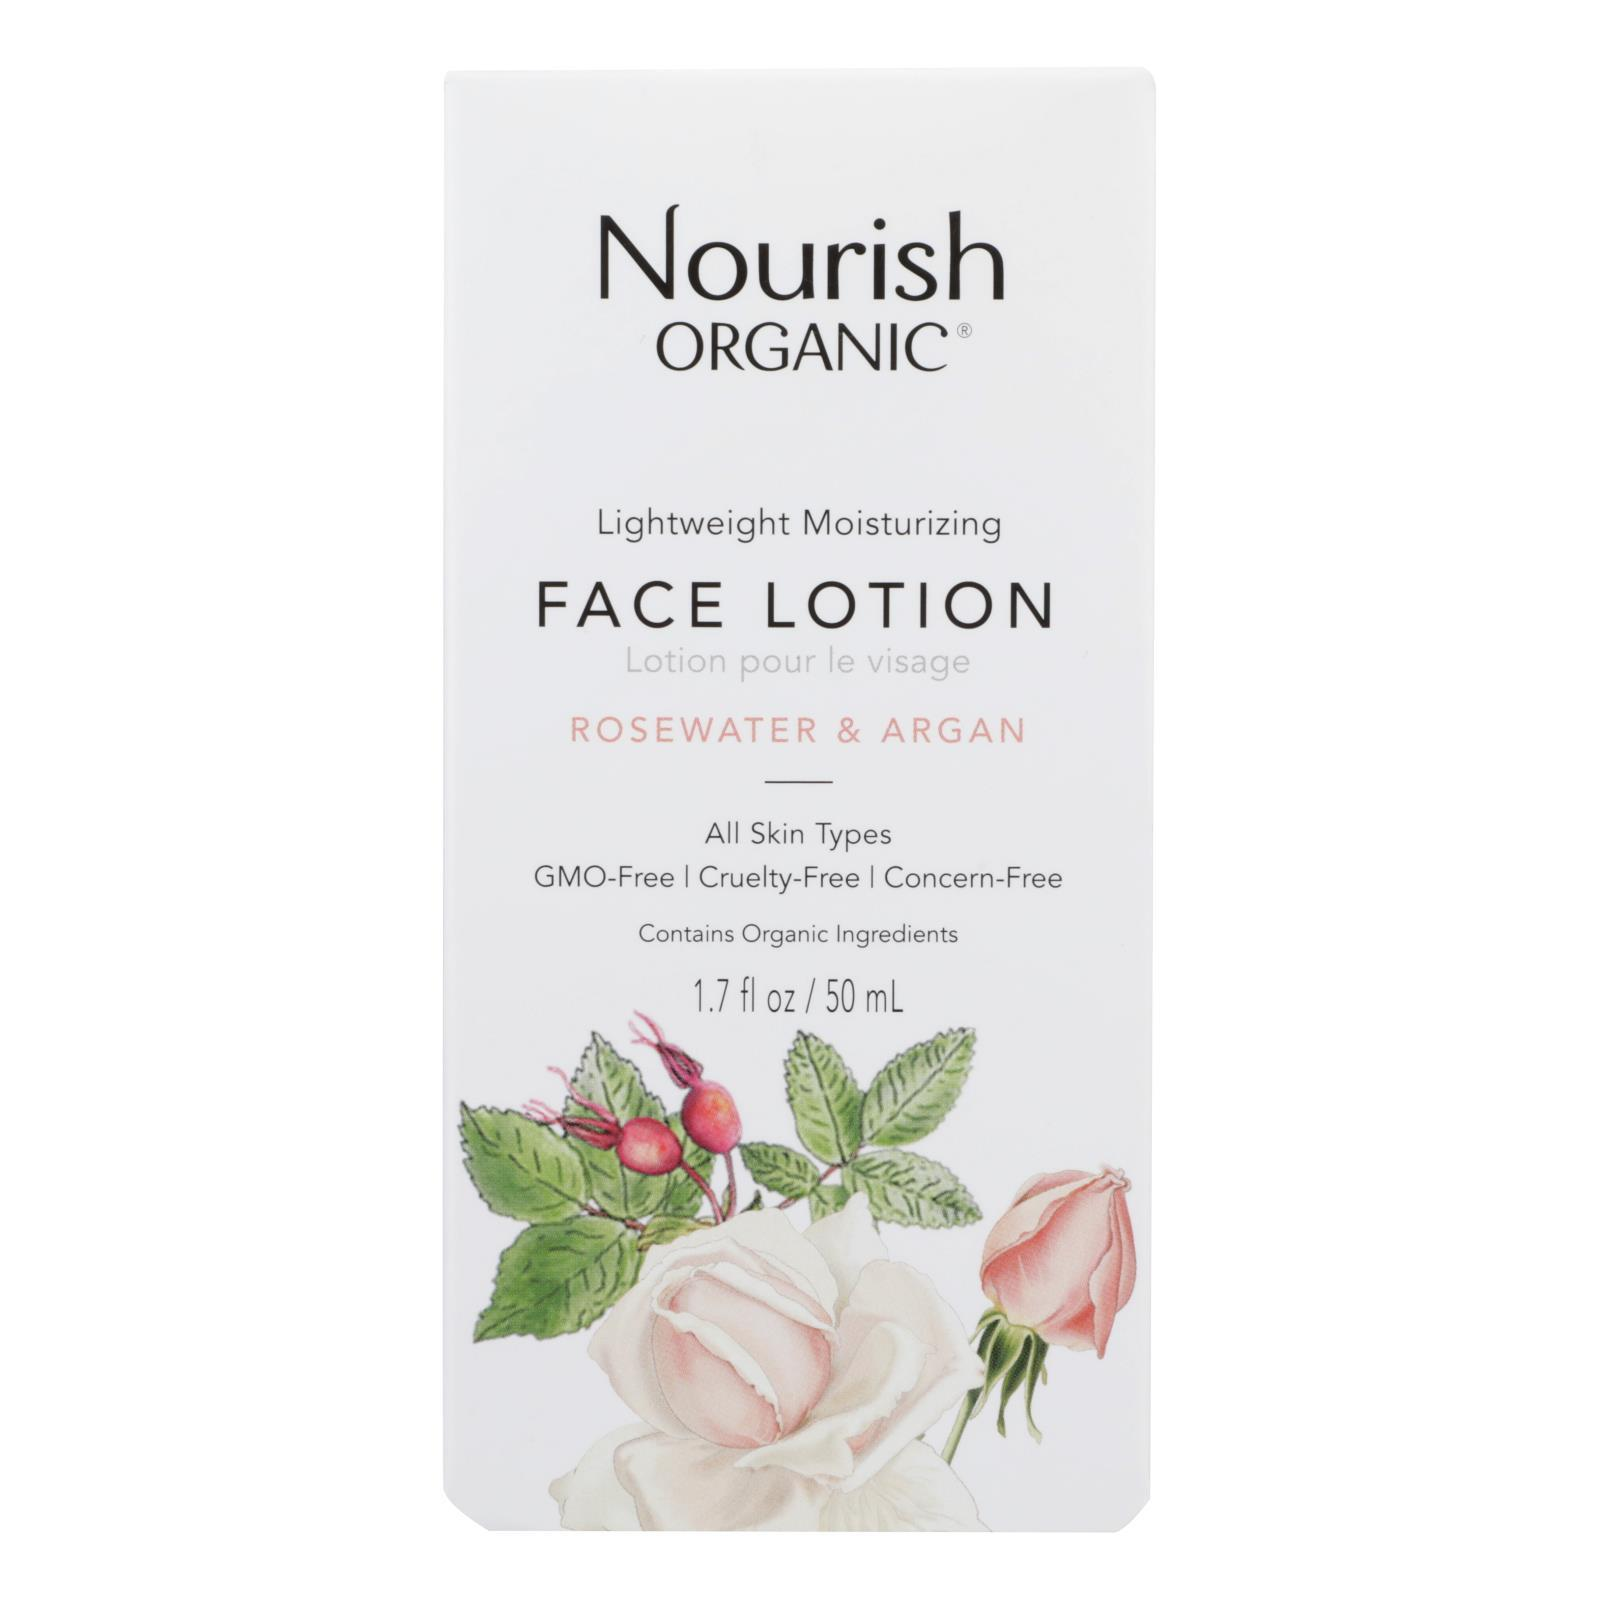 Nourish Facial Lotion - Organic - Lightweight Moisturizing - Argan And Rosewater - 1.7 Oz - 1 Each - BeeGreen